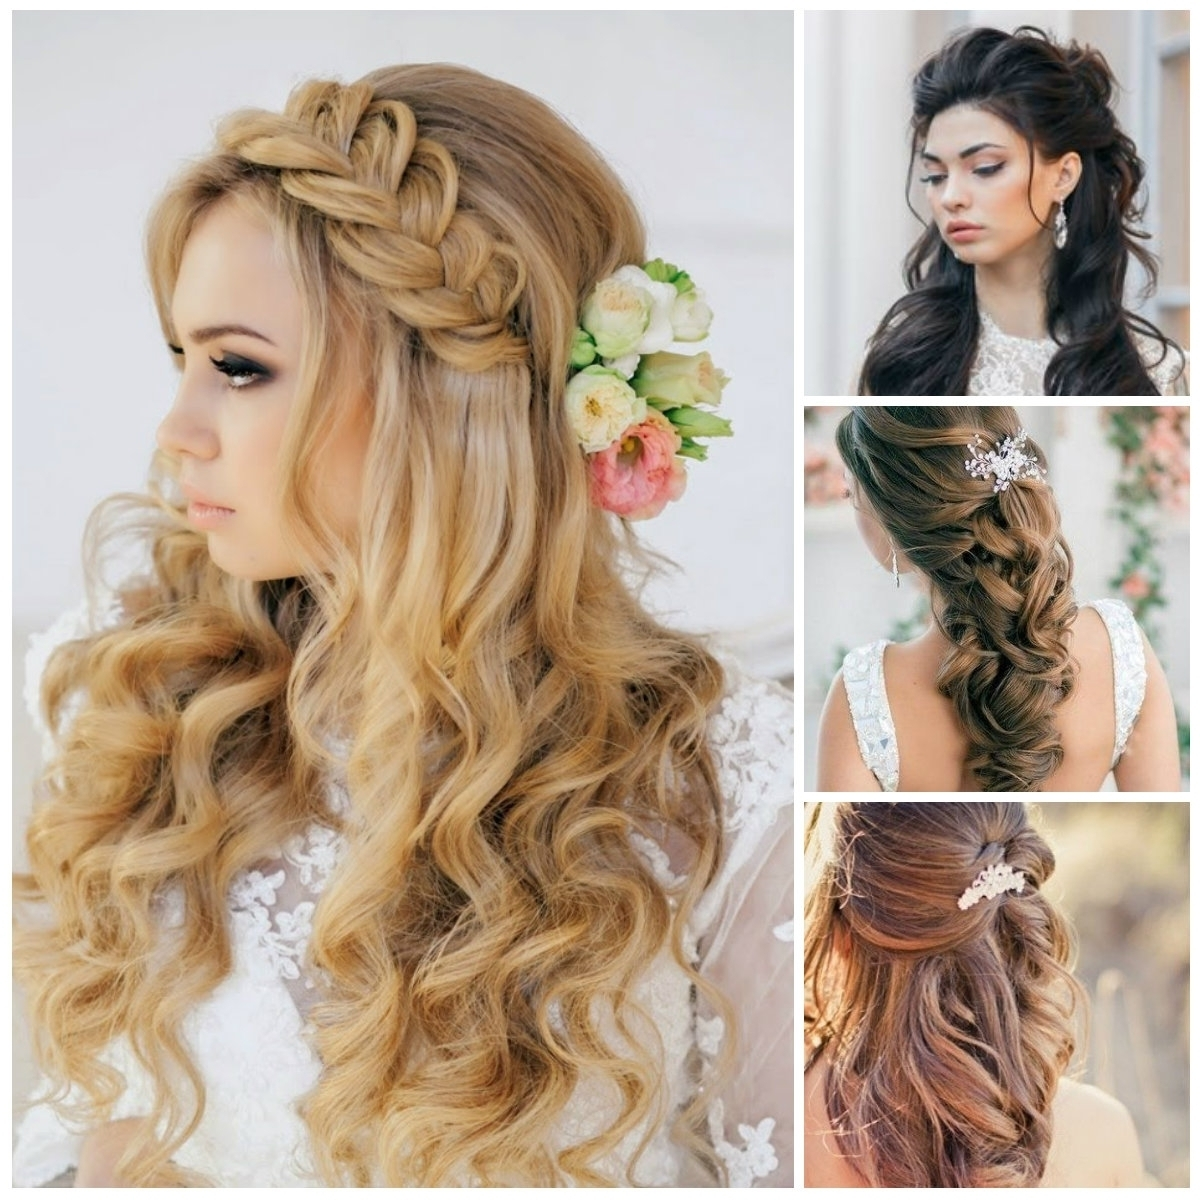 Stunning Wedding Hairstyles For Medium Length Ideas Bridal Shoulder Within Most Current Wedding Hairstyles For Medium Length Curly Hair (View 13 of 15)